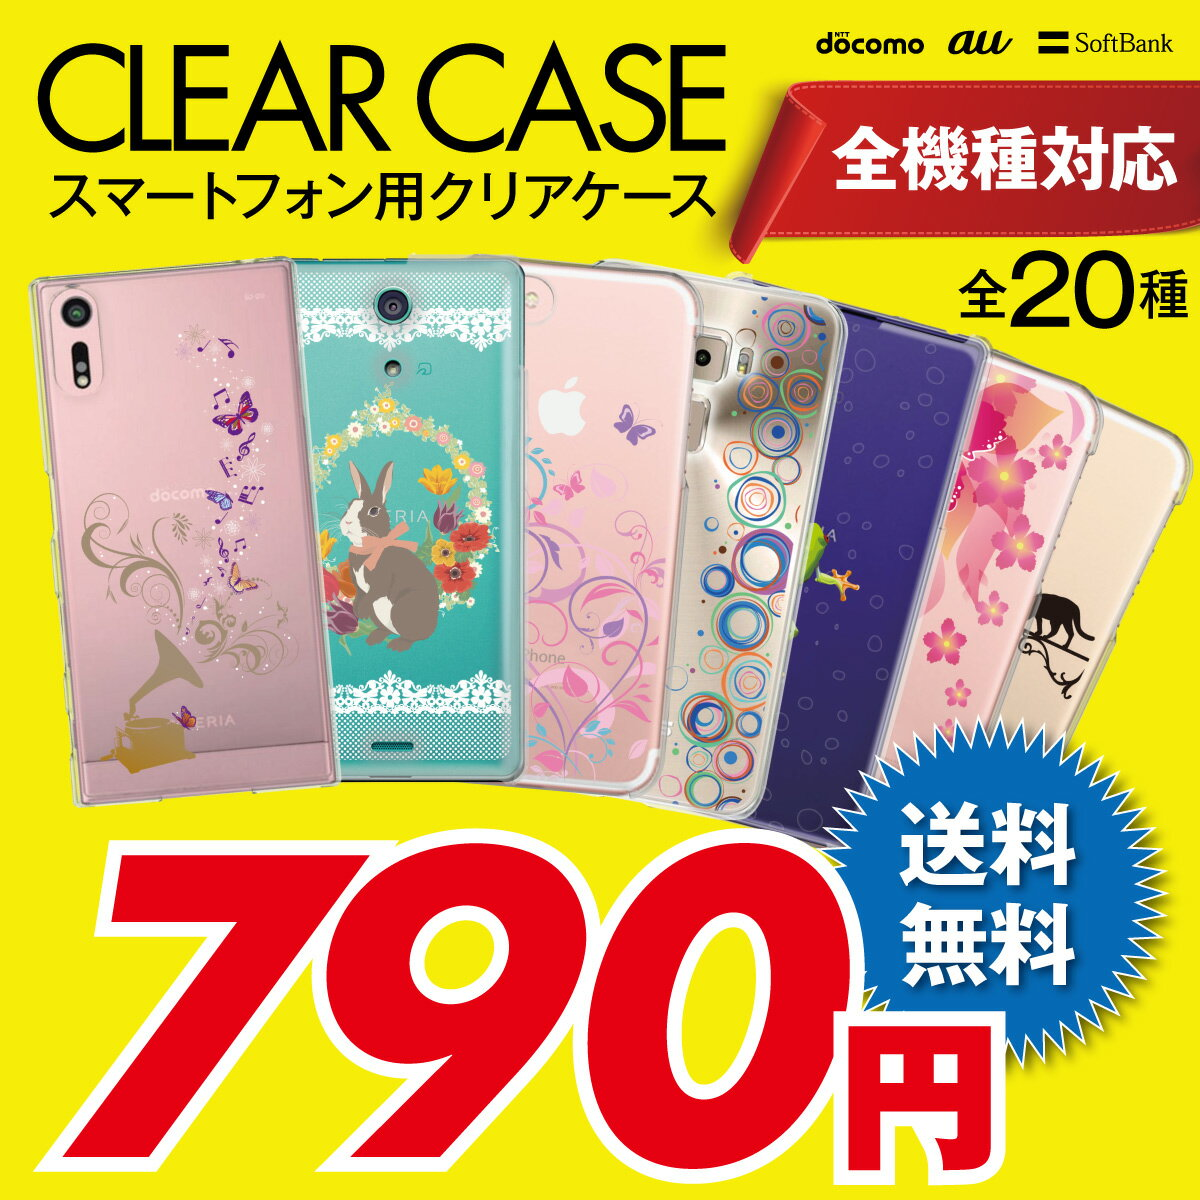 スマホケース 全機種対応 ケース カバー ハードケース クリアケース iPhoneX iPhone8 Plus iPhone7 iPhone6s iPhone6 Plus iPhone SE 5s Xperia XZ2 XZ1 XZ XZs SO-05K SO-03K aquos R2 R SH-03K SHV42 galaxy S9 S8 sa04 発送はメール便